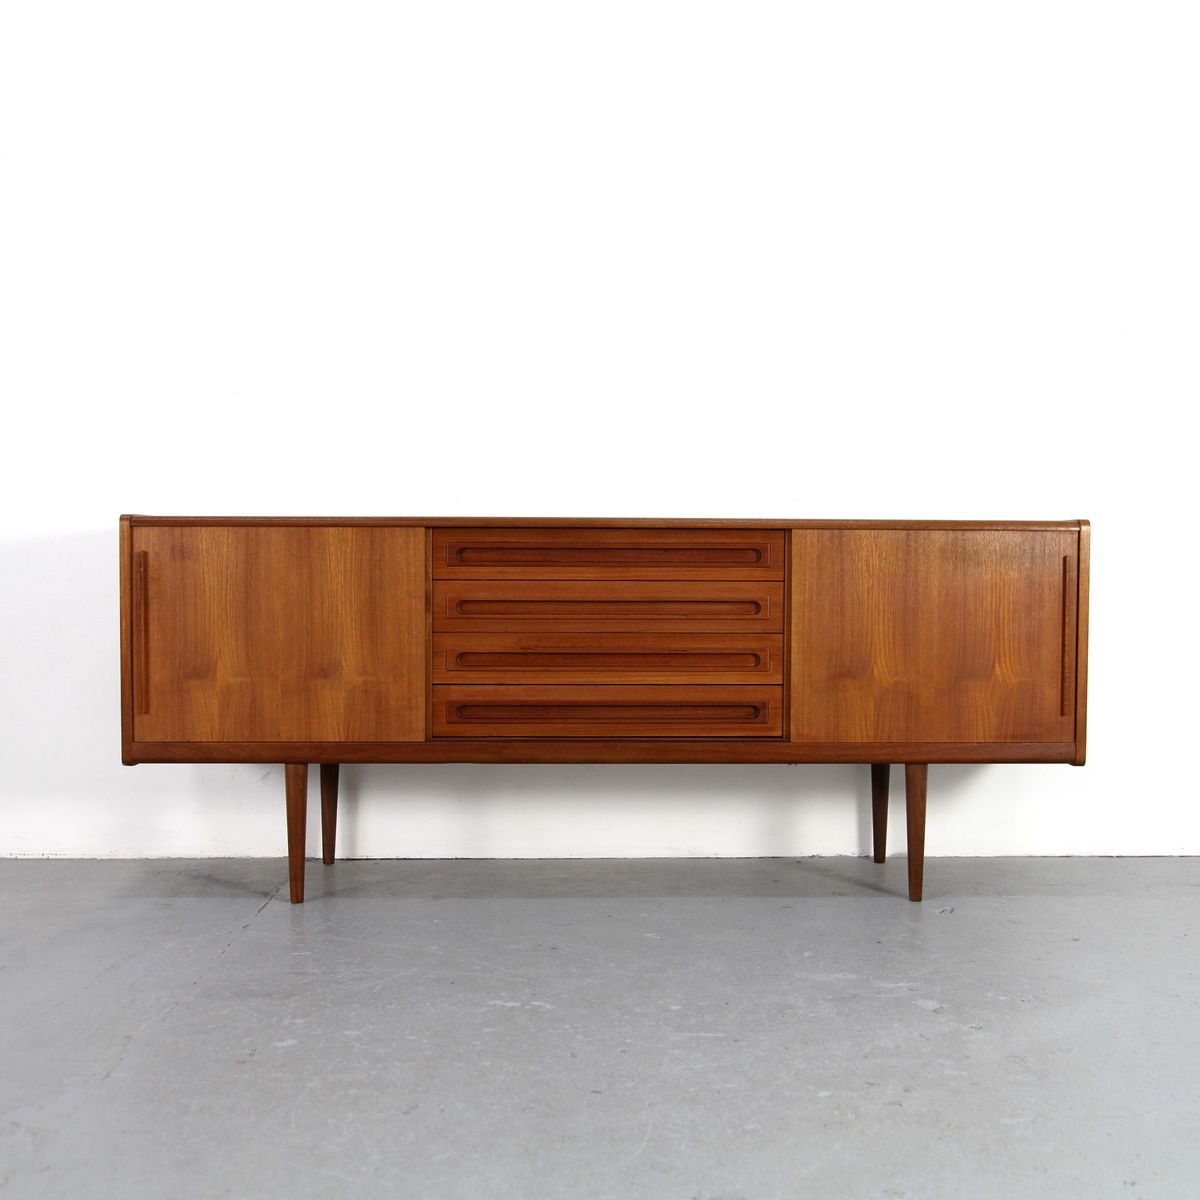 Danish mid century teak sideboard for sale at pamono - Sideboard mid century ...